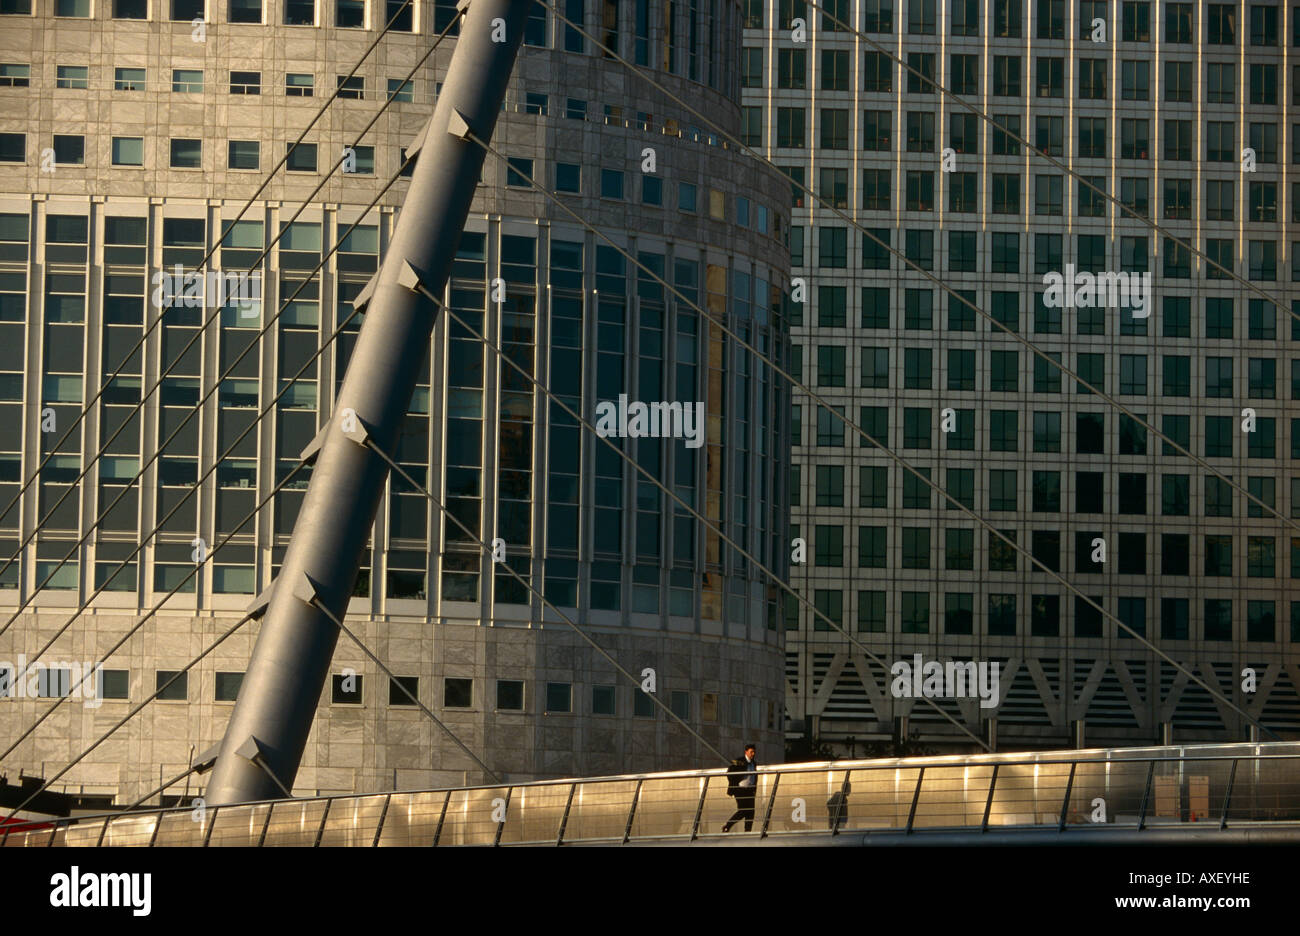 A lone person walks across a bridge in London's Docklands at Canary Wharf. - Stock Image